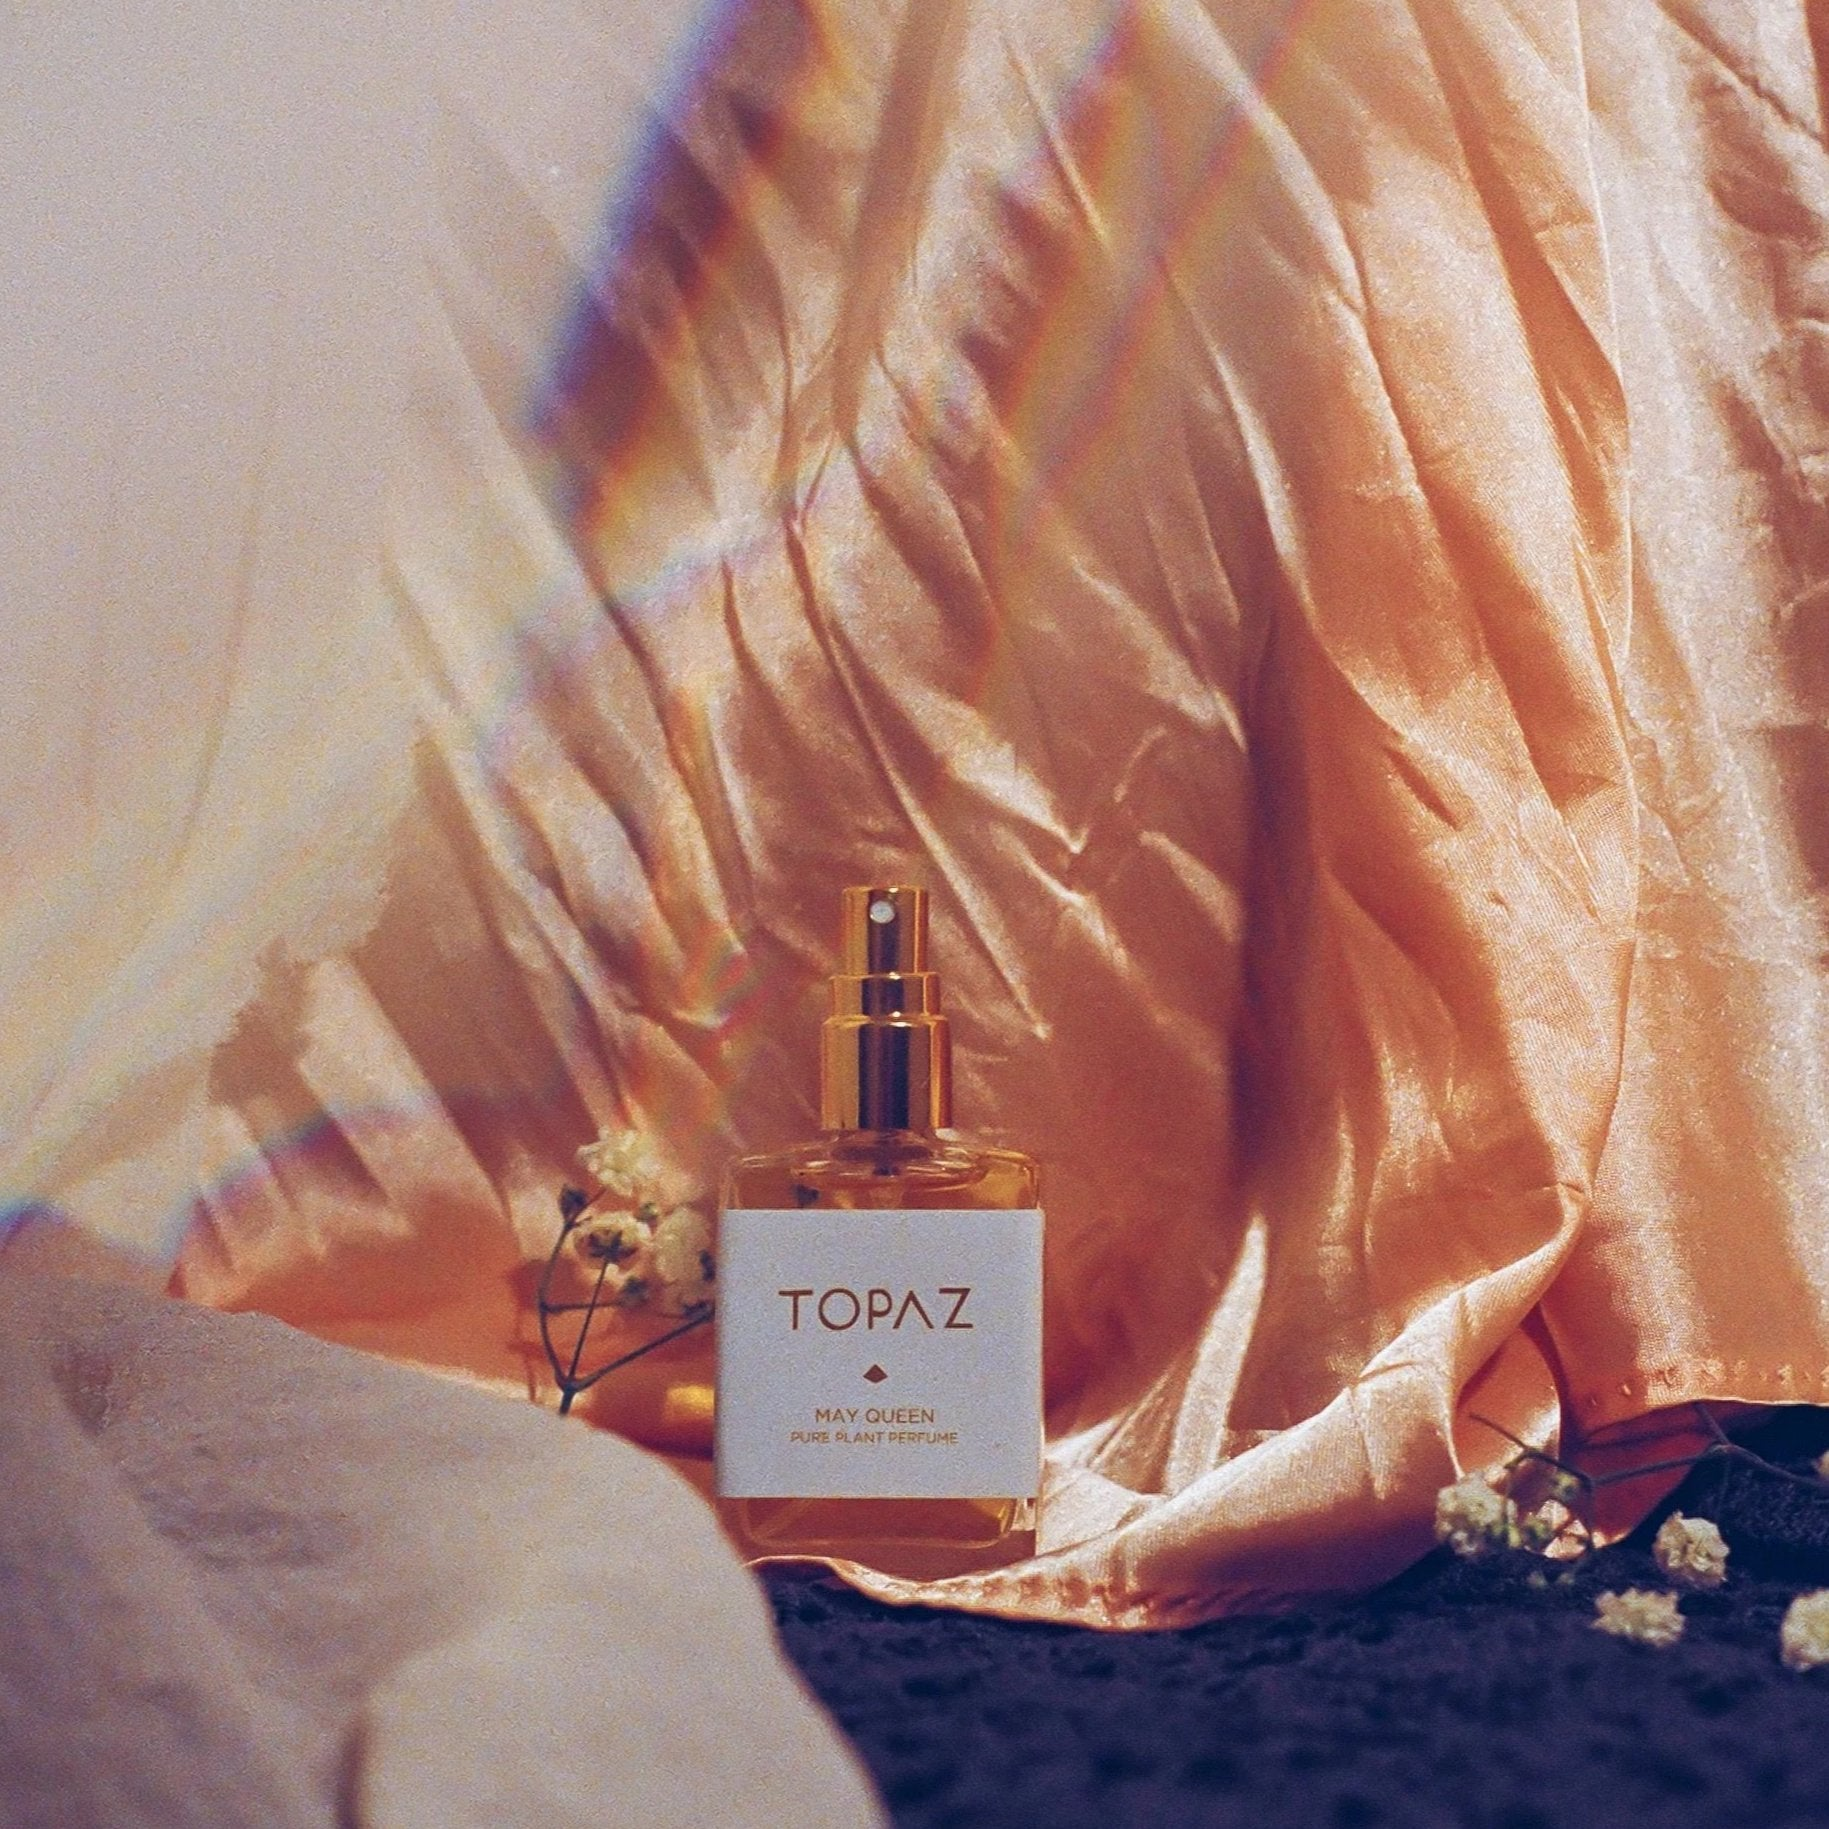 May Queen Natural Perfume